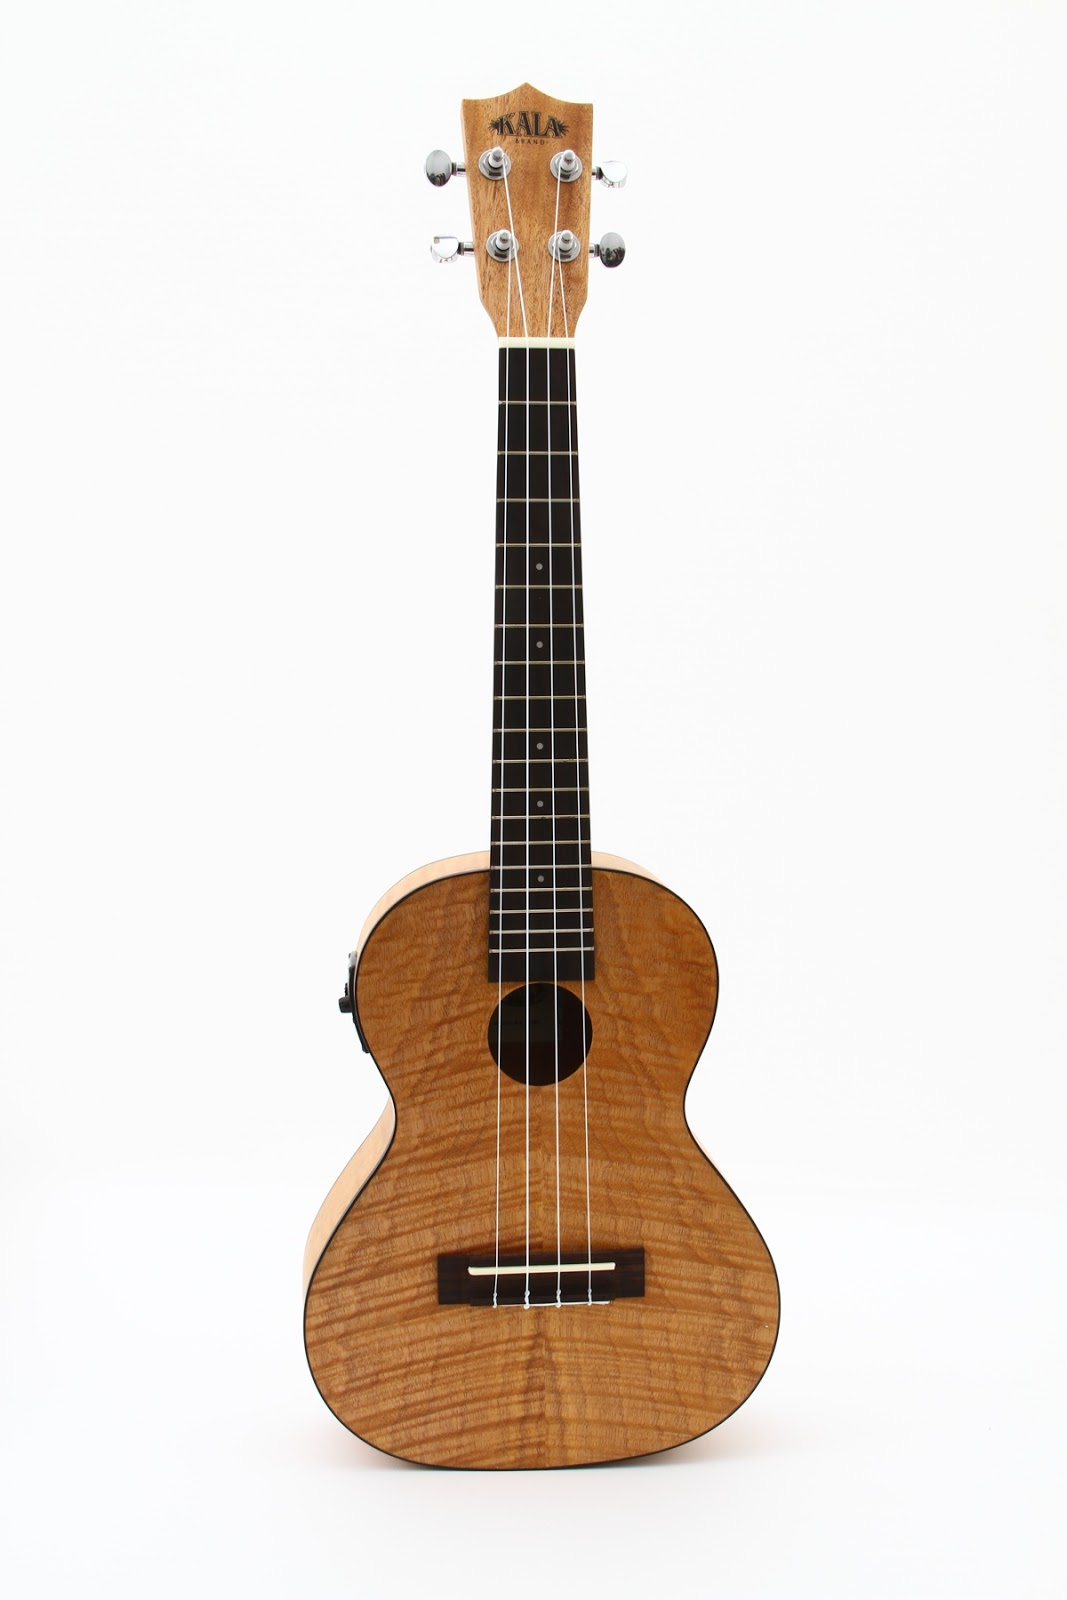 the northern ukuleles new kala brand ukulele shipmment is arriving in australia soon and i 39 ve. Black Bedroom Furniture Sets. Home Design Ideas